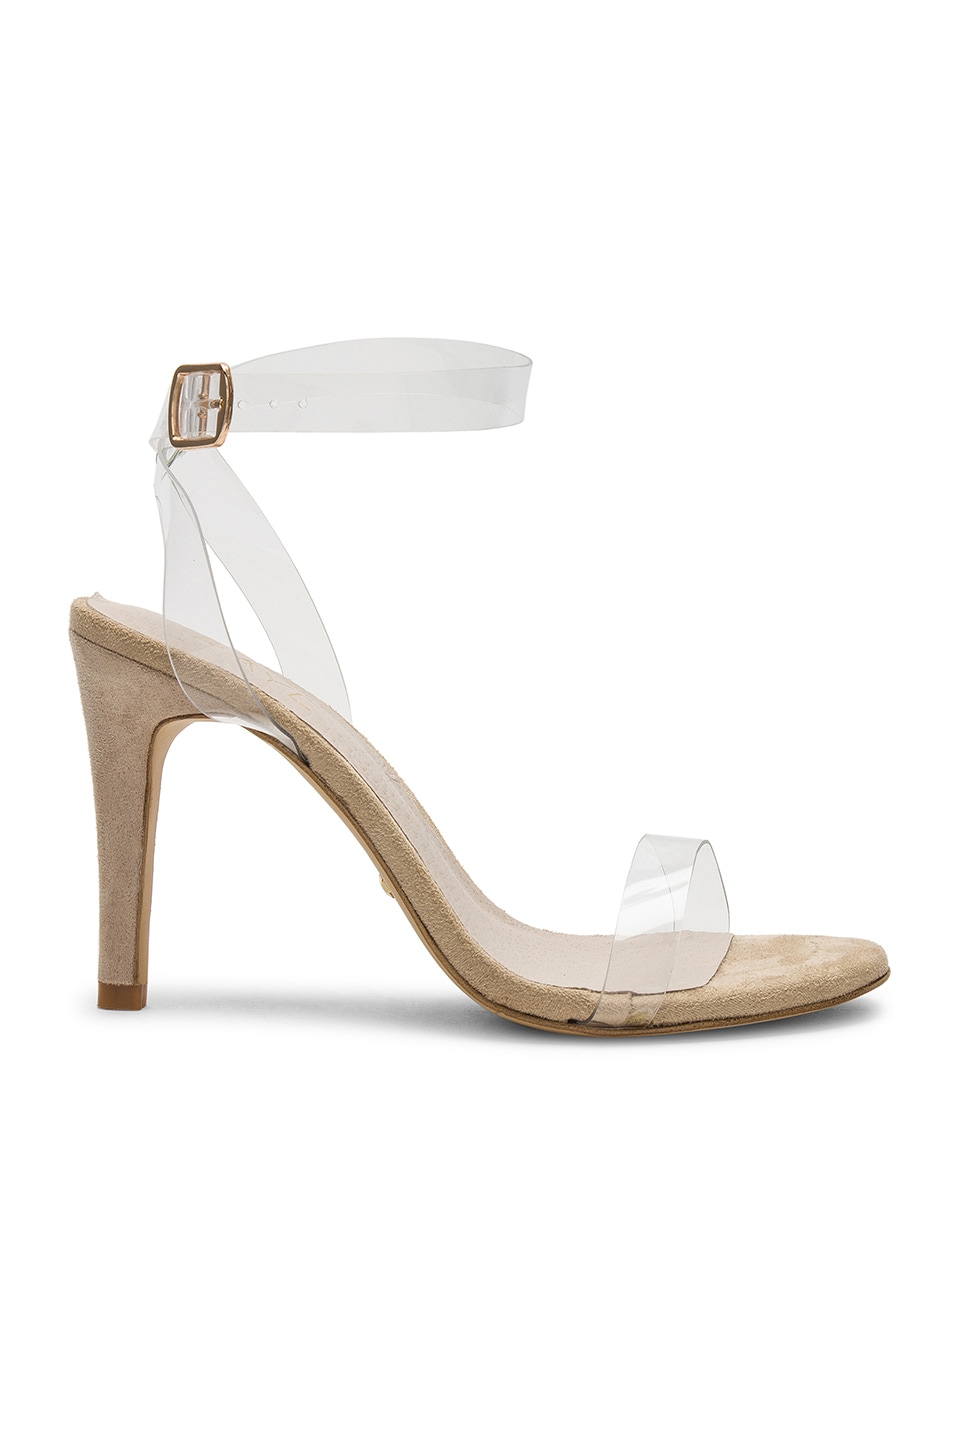 RAYE Sabine Heel in Tan